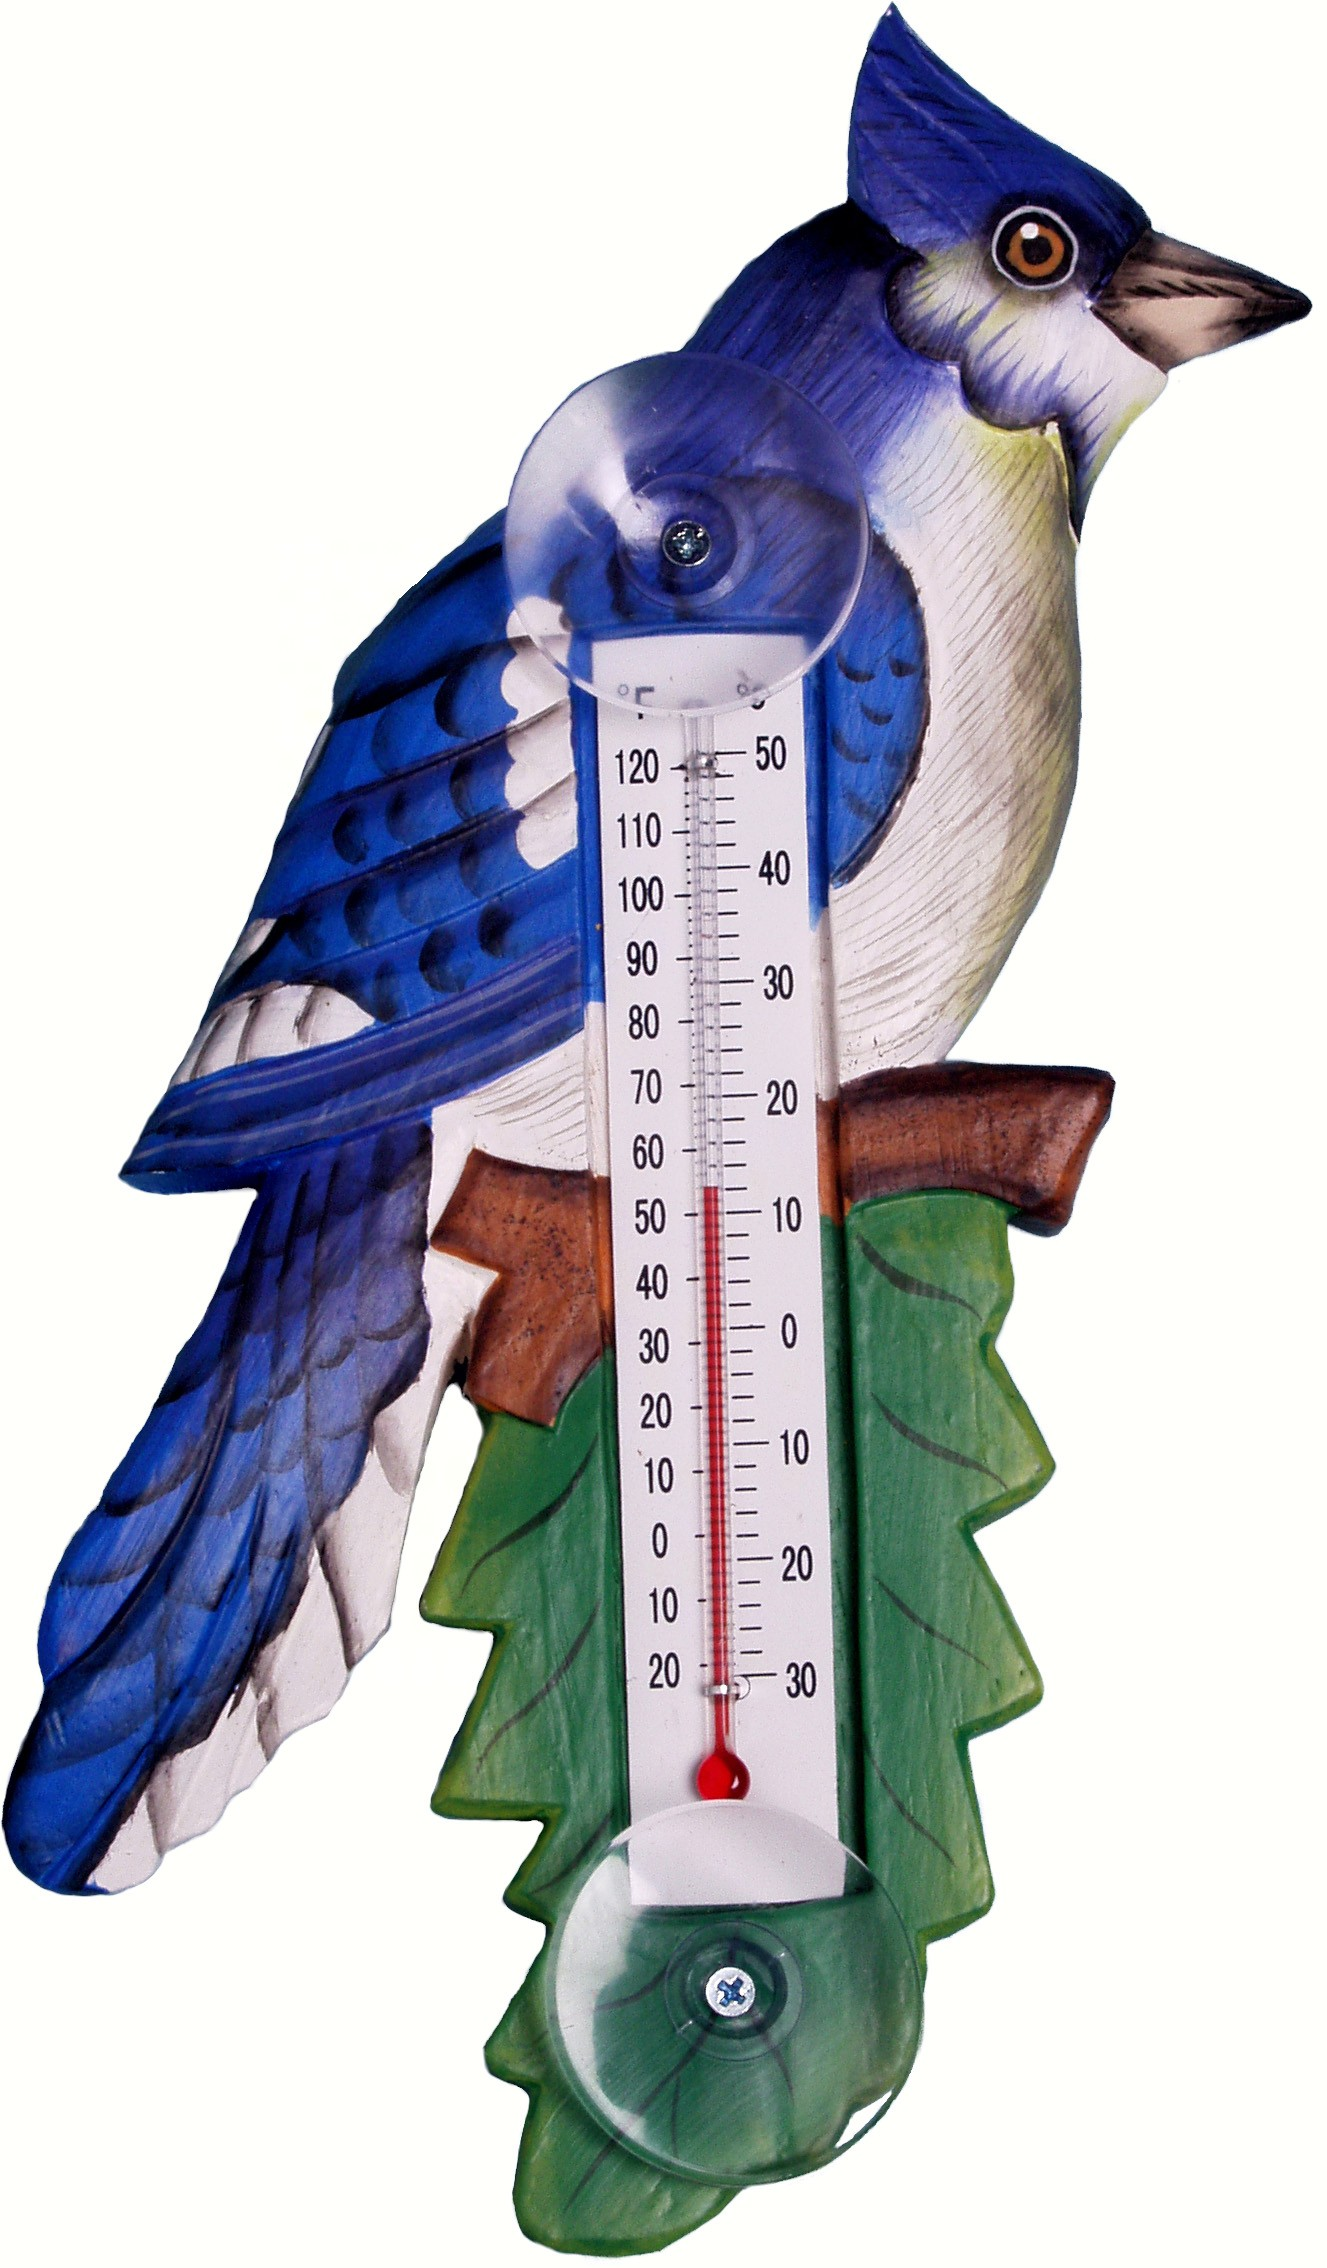 Thermometer Small Blue Jay